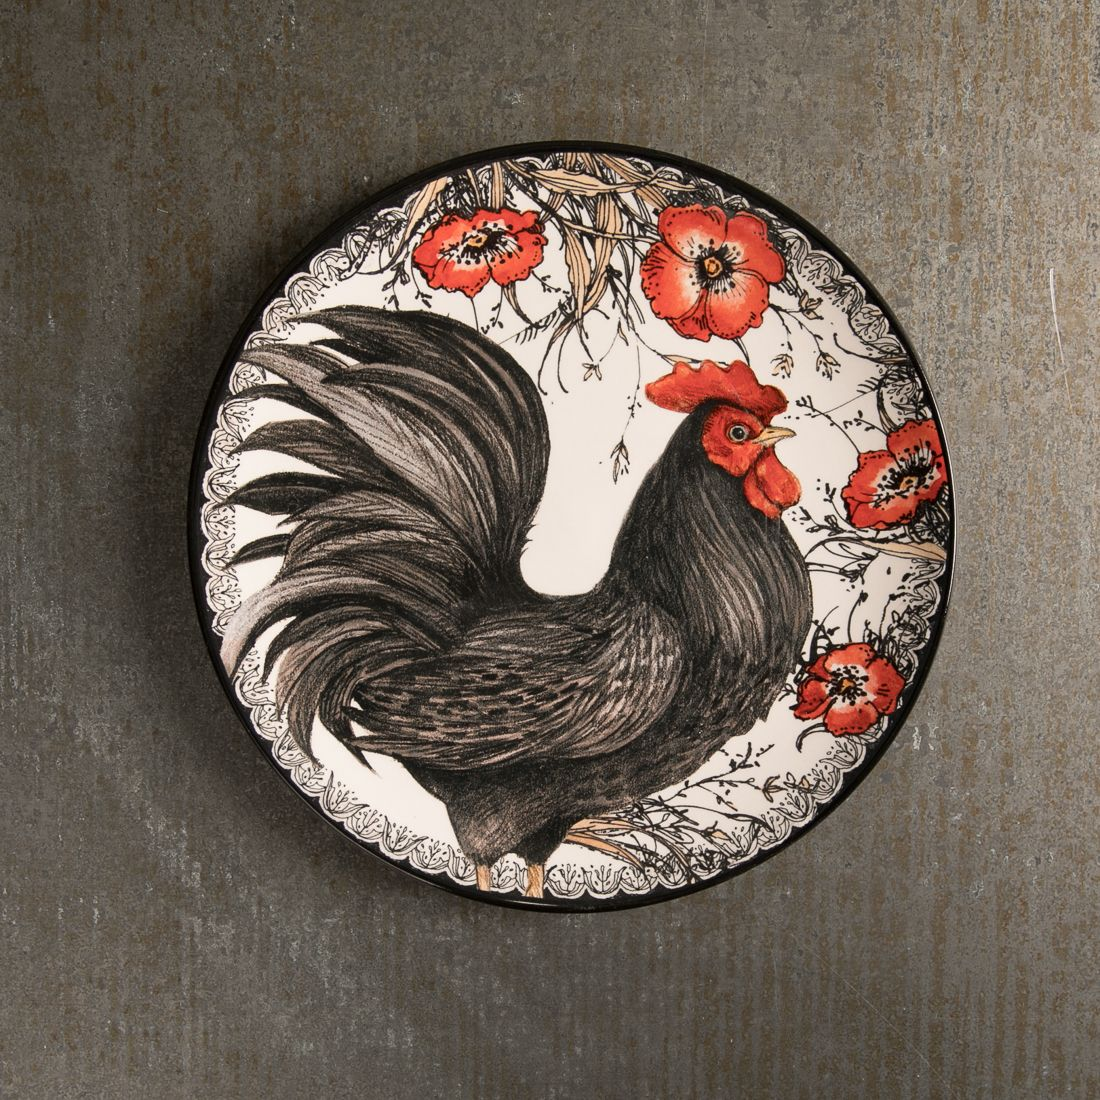 Black Rooster Salad Plate Right Facing Black Rooster Rooster Plates Plates